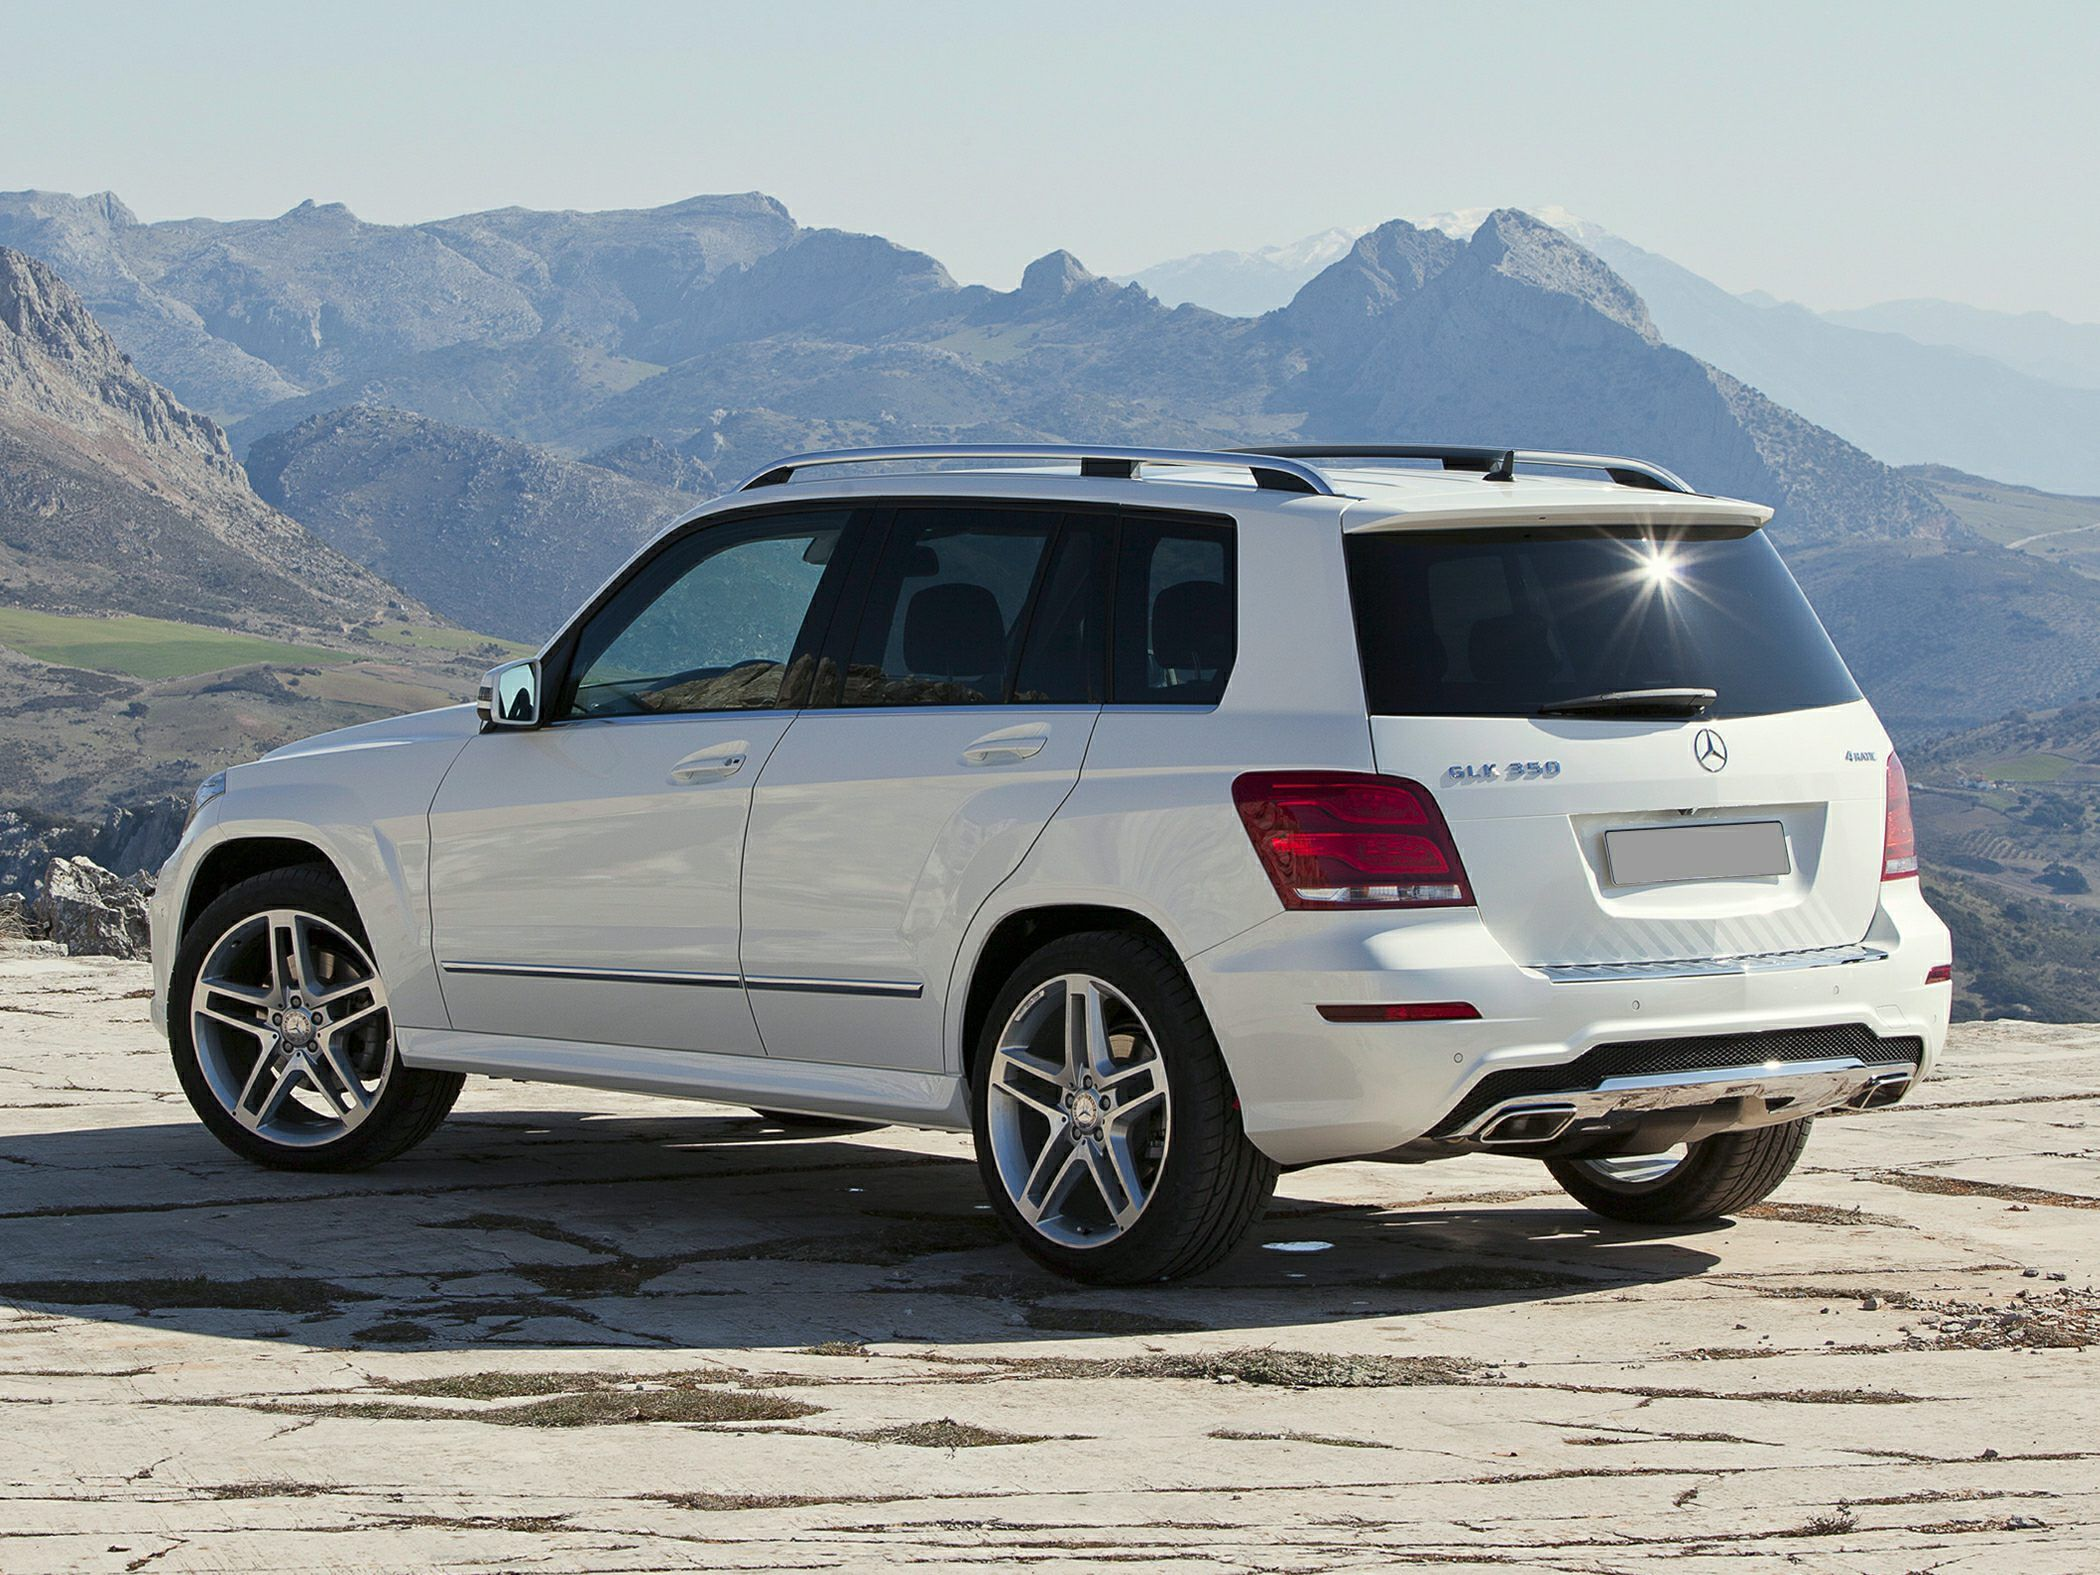 jeep automobile suv benz side view g price news mercedes class magazine builds